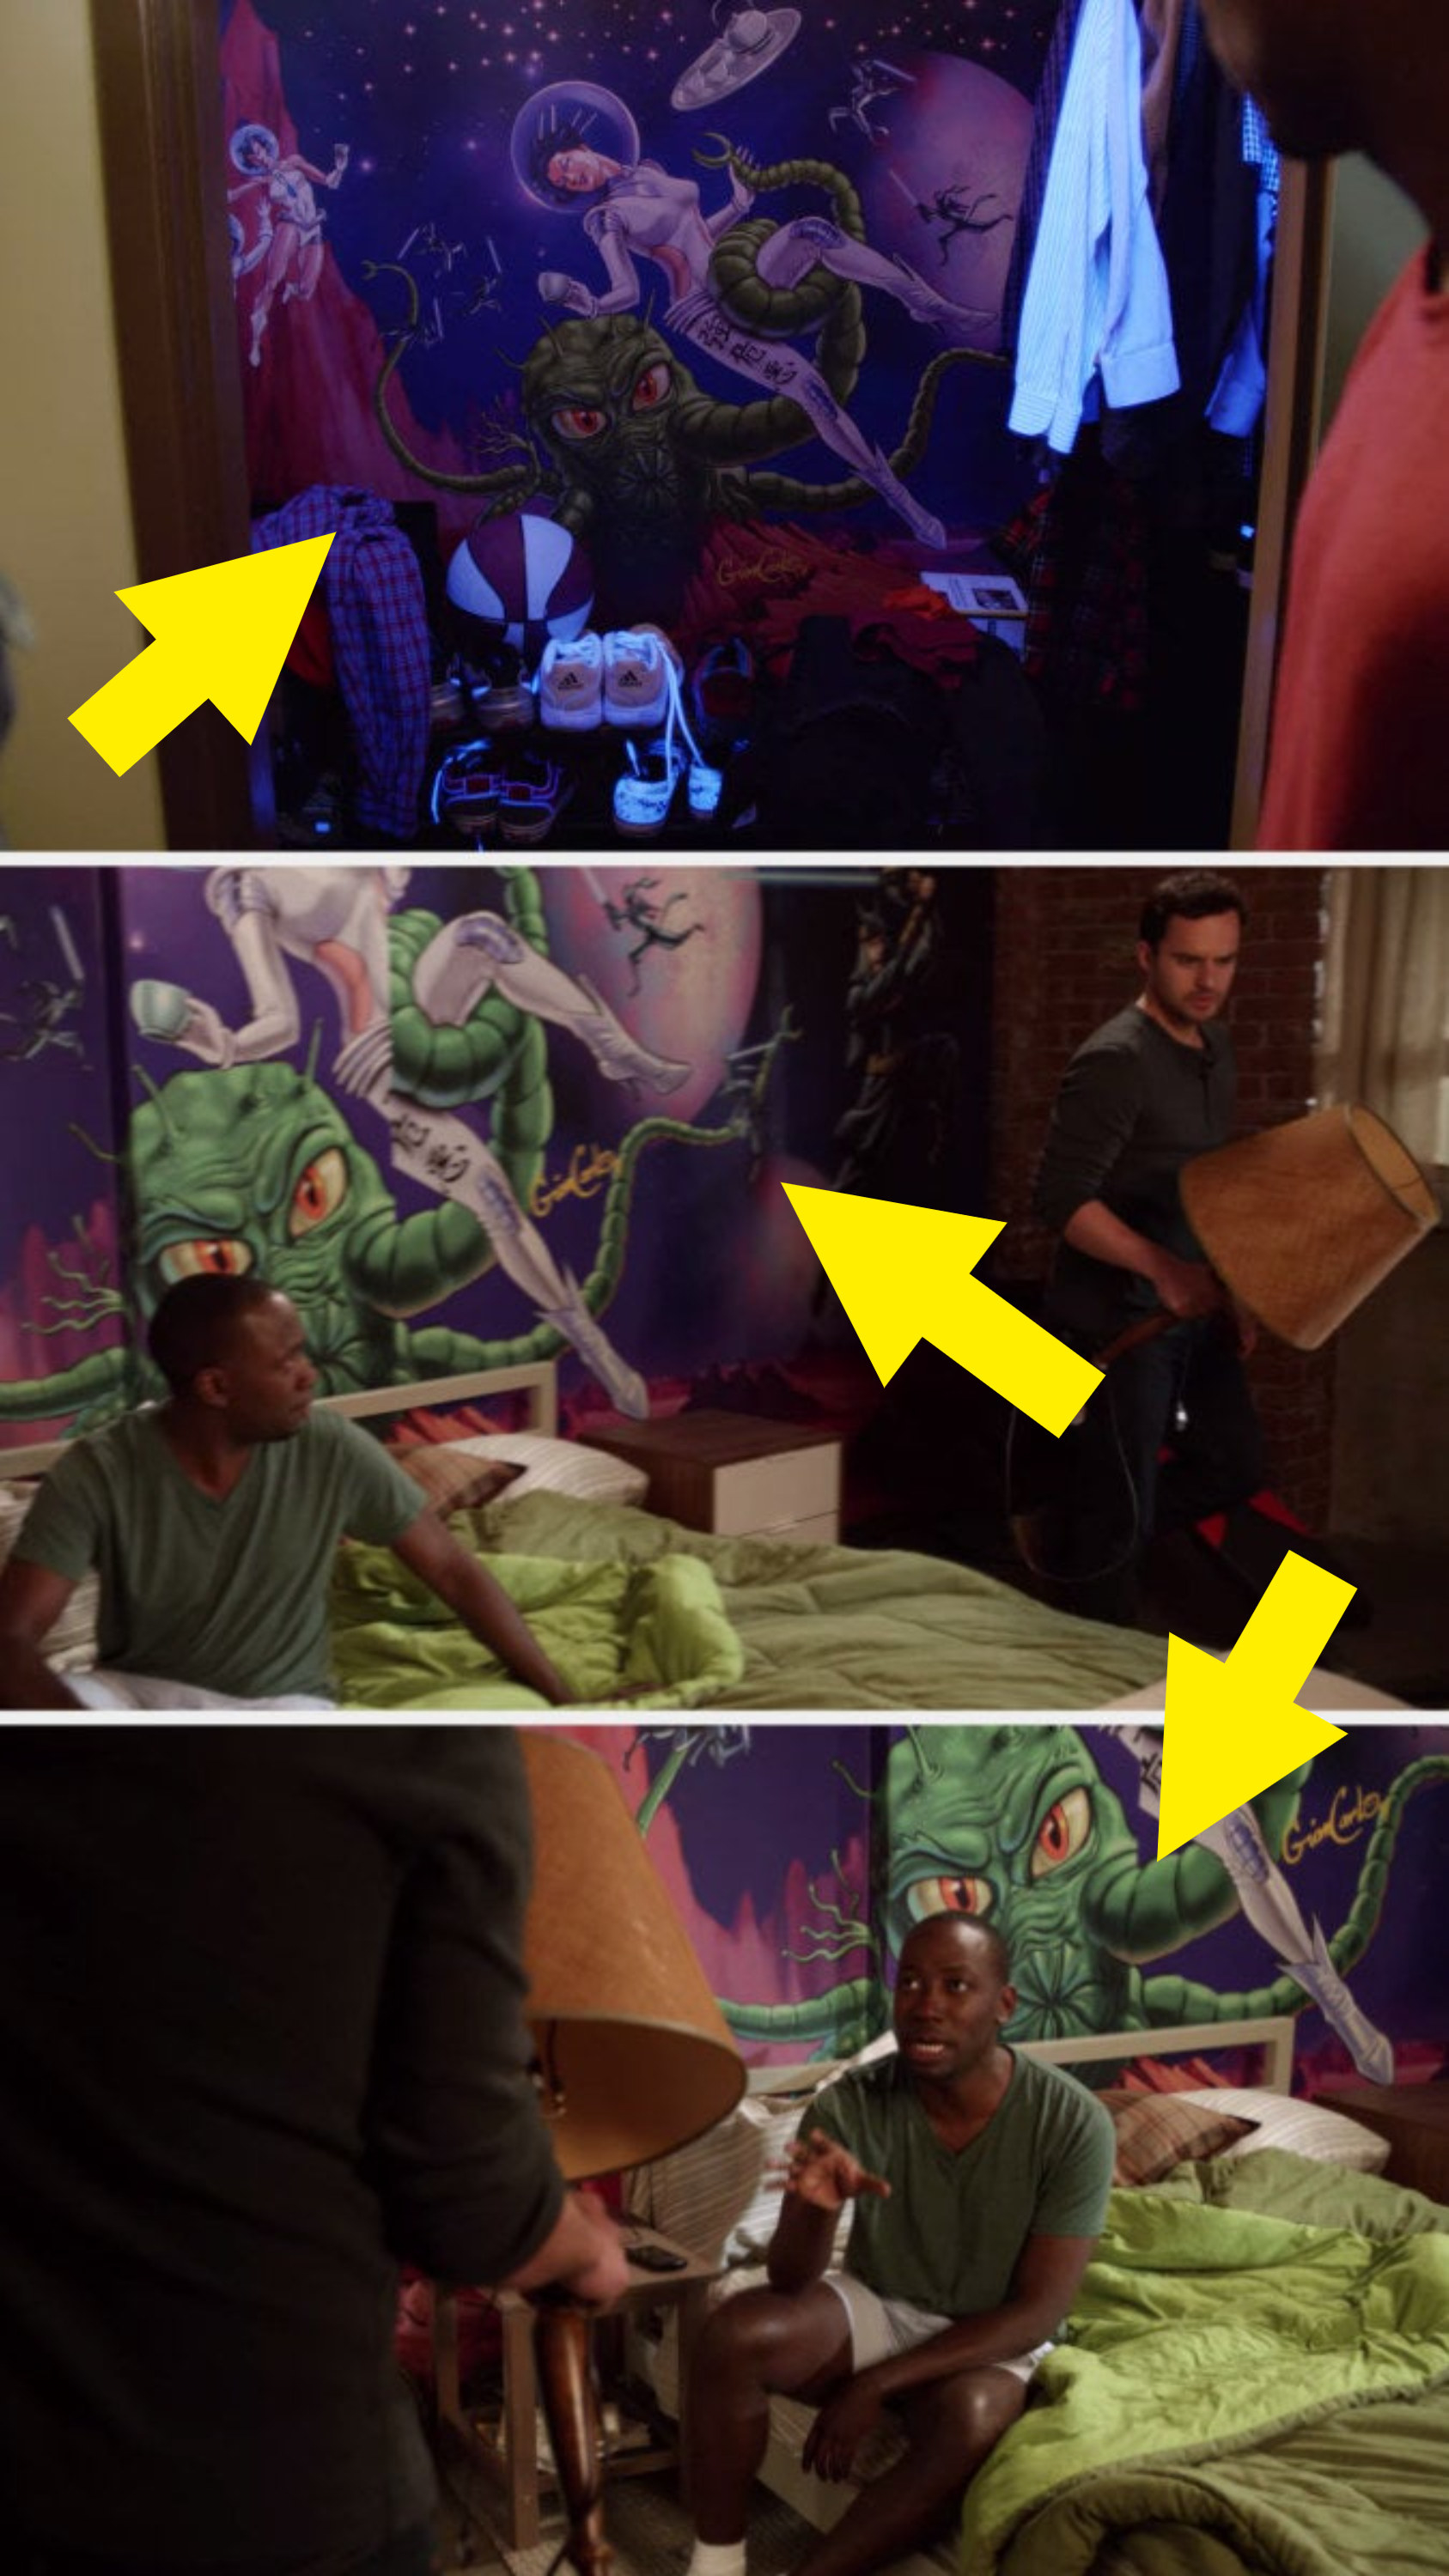 The mural in winston's closet, and the mural behind his bed later in season 1